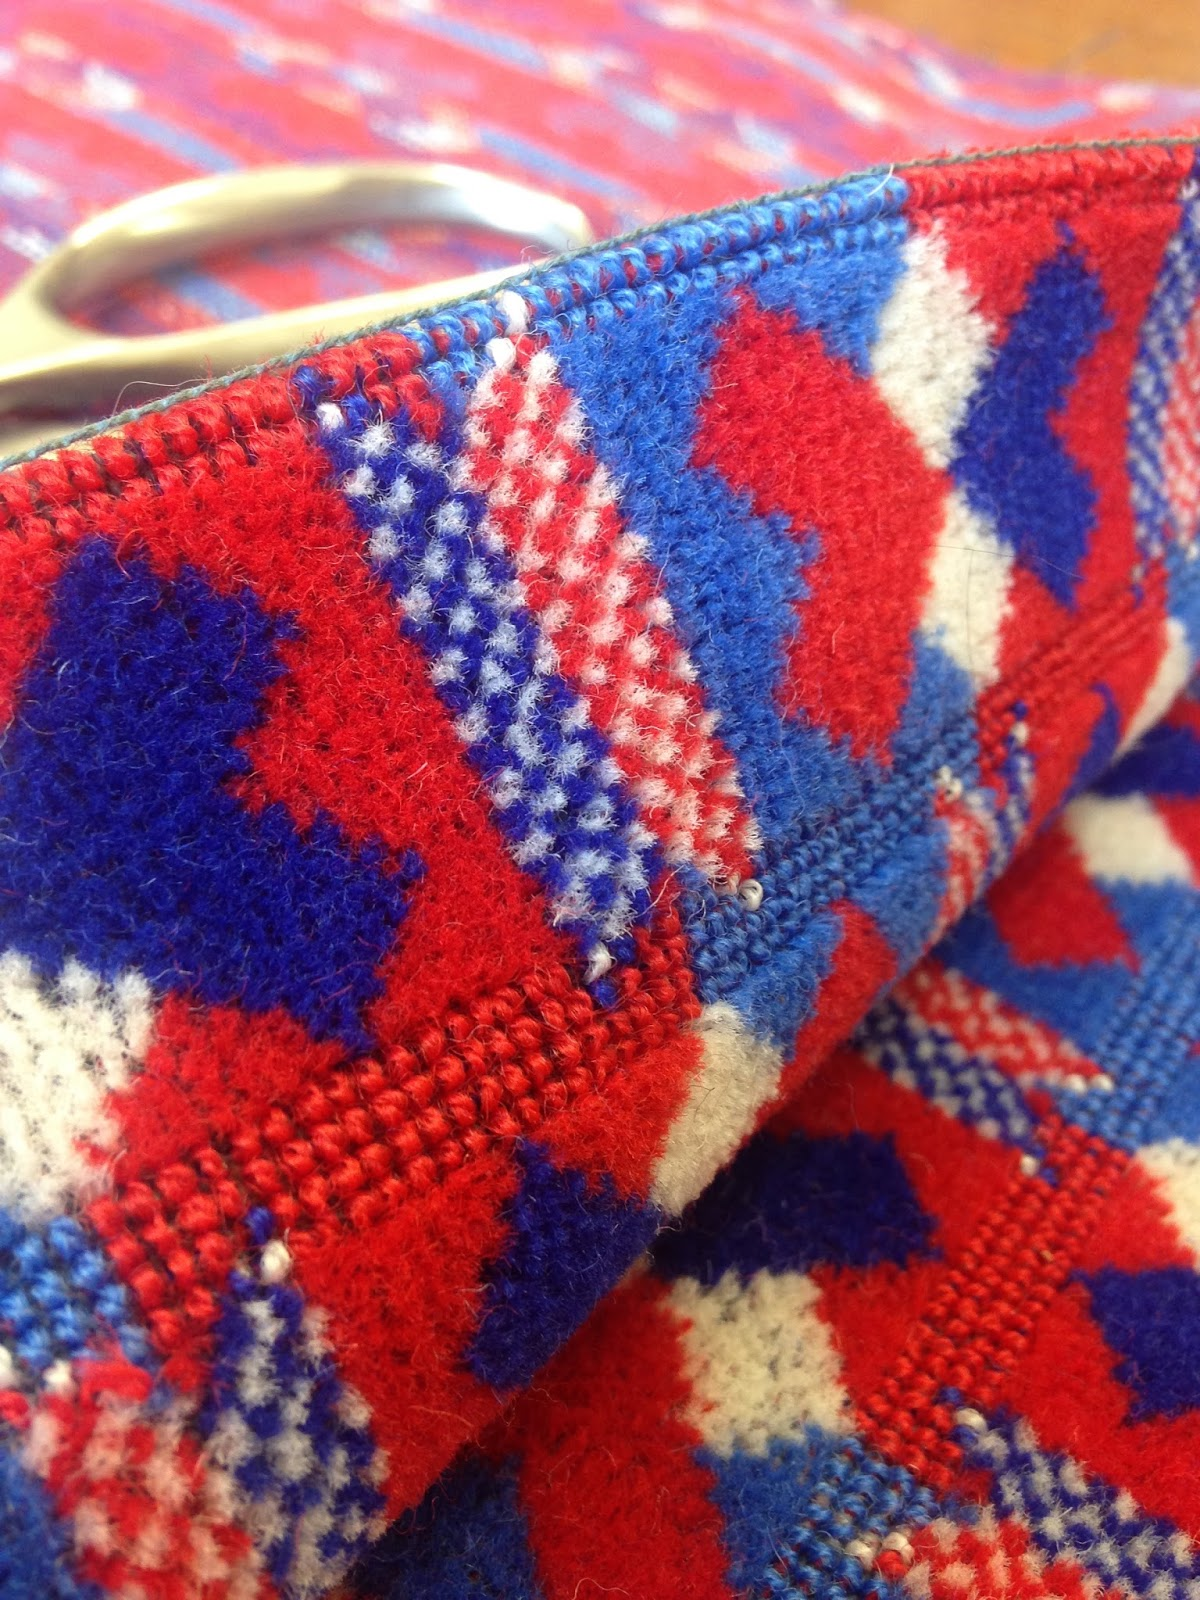 Didyoumakeityourself london underground victoria line for London underground moquette